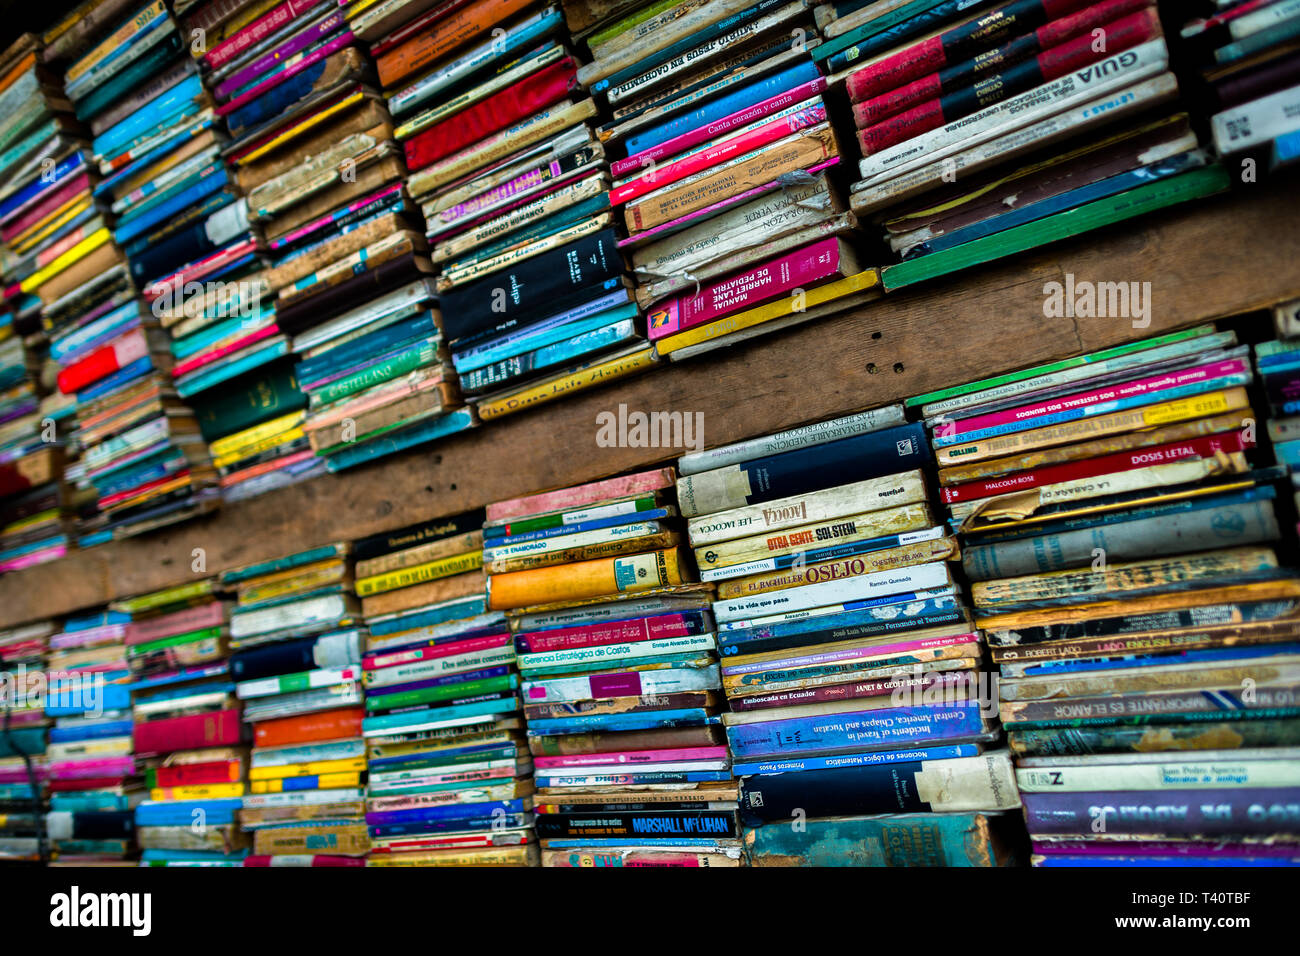 Spines of used books are seen stacked in a secondhand bookshop in San Salvador, El Salvador. Stock Photo